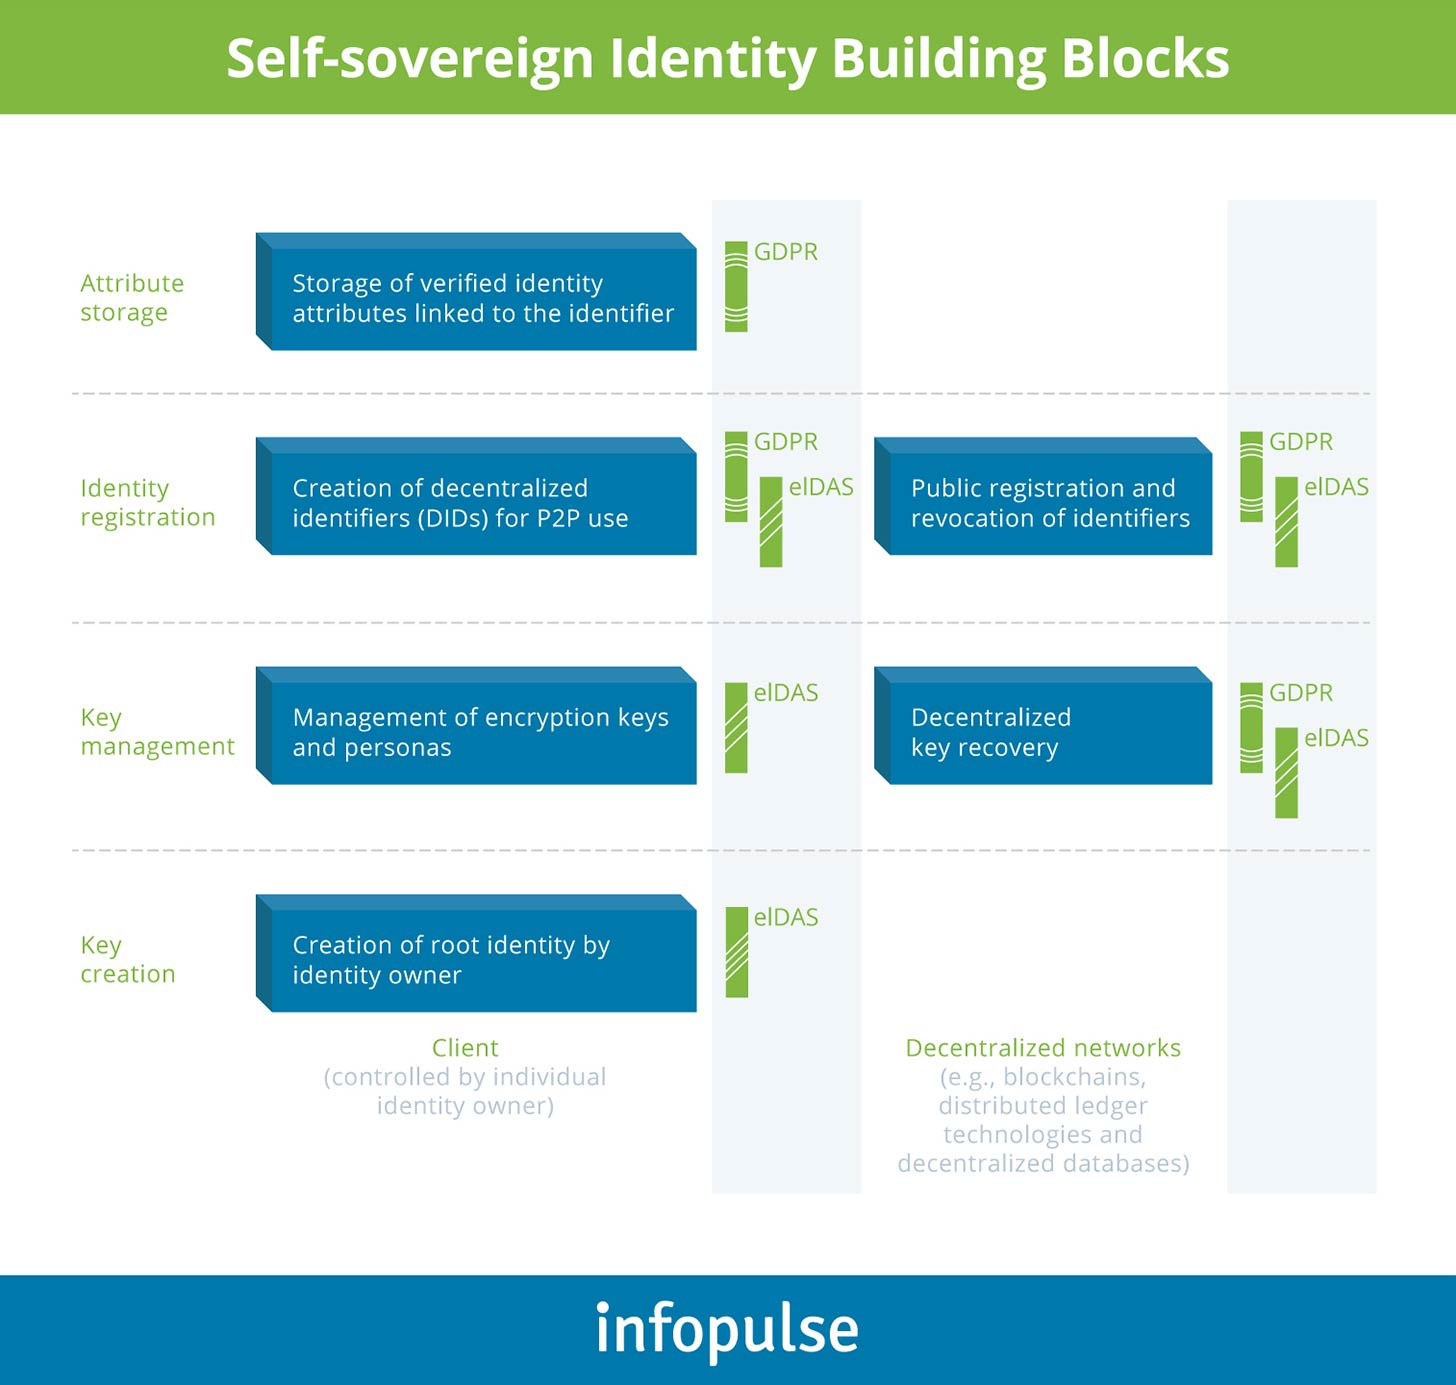 self-sovereign-identity-building-blocks - Infopulse - 1